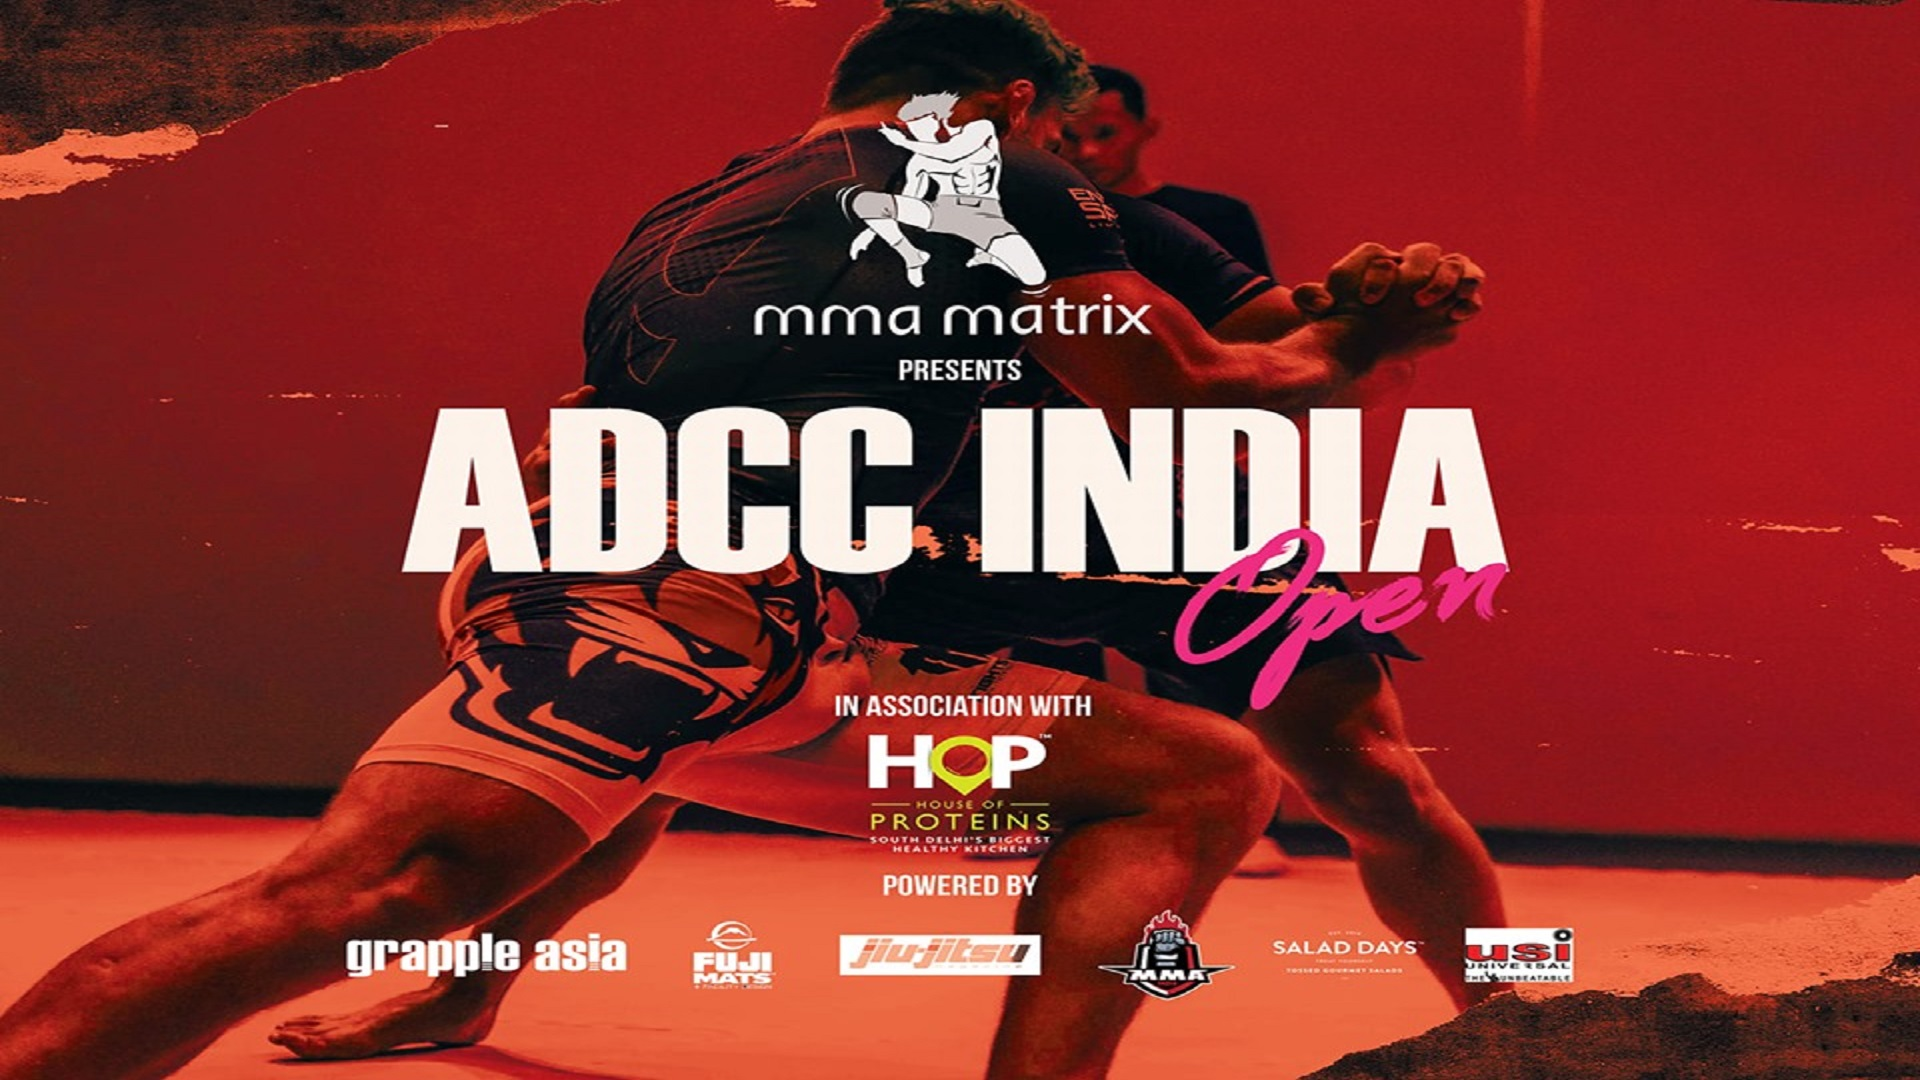 https://lockerroom.in/blog/view/ADCC-India-Open-Results-and-Medal-Winners-List